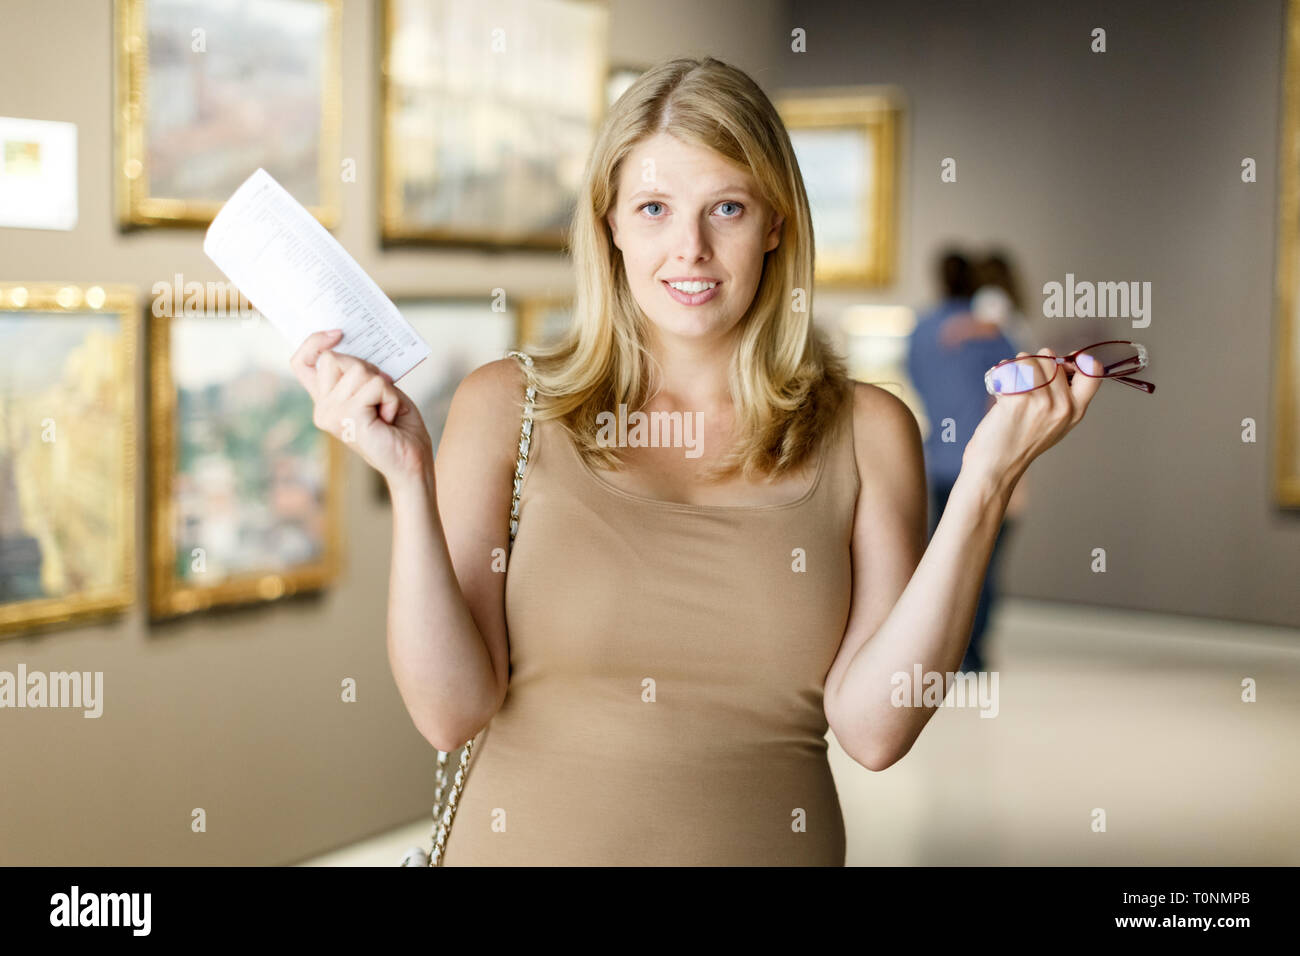 Woman expressing bewilderment standing near picture in art museum - Stock Image